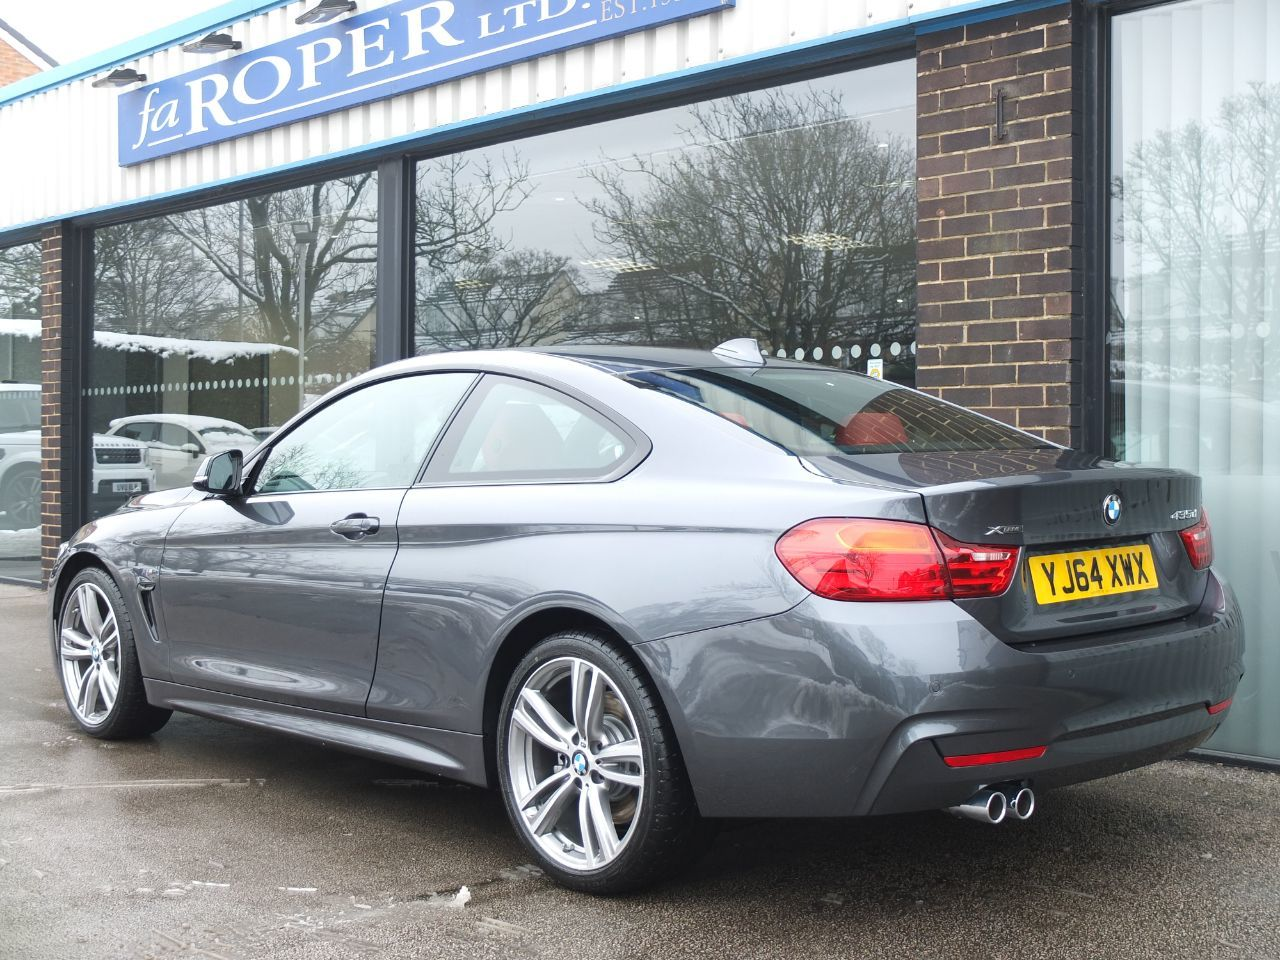 second hand bmw 4 series 435d xdrive m sport auto spec for sale in bradford west yorkshire. Black Bedroom Furniture Sets. Home Design Ideas